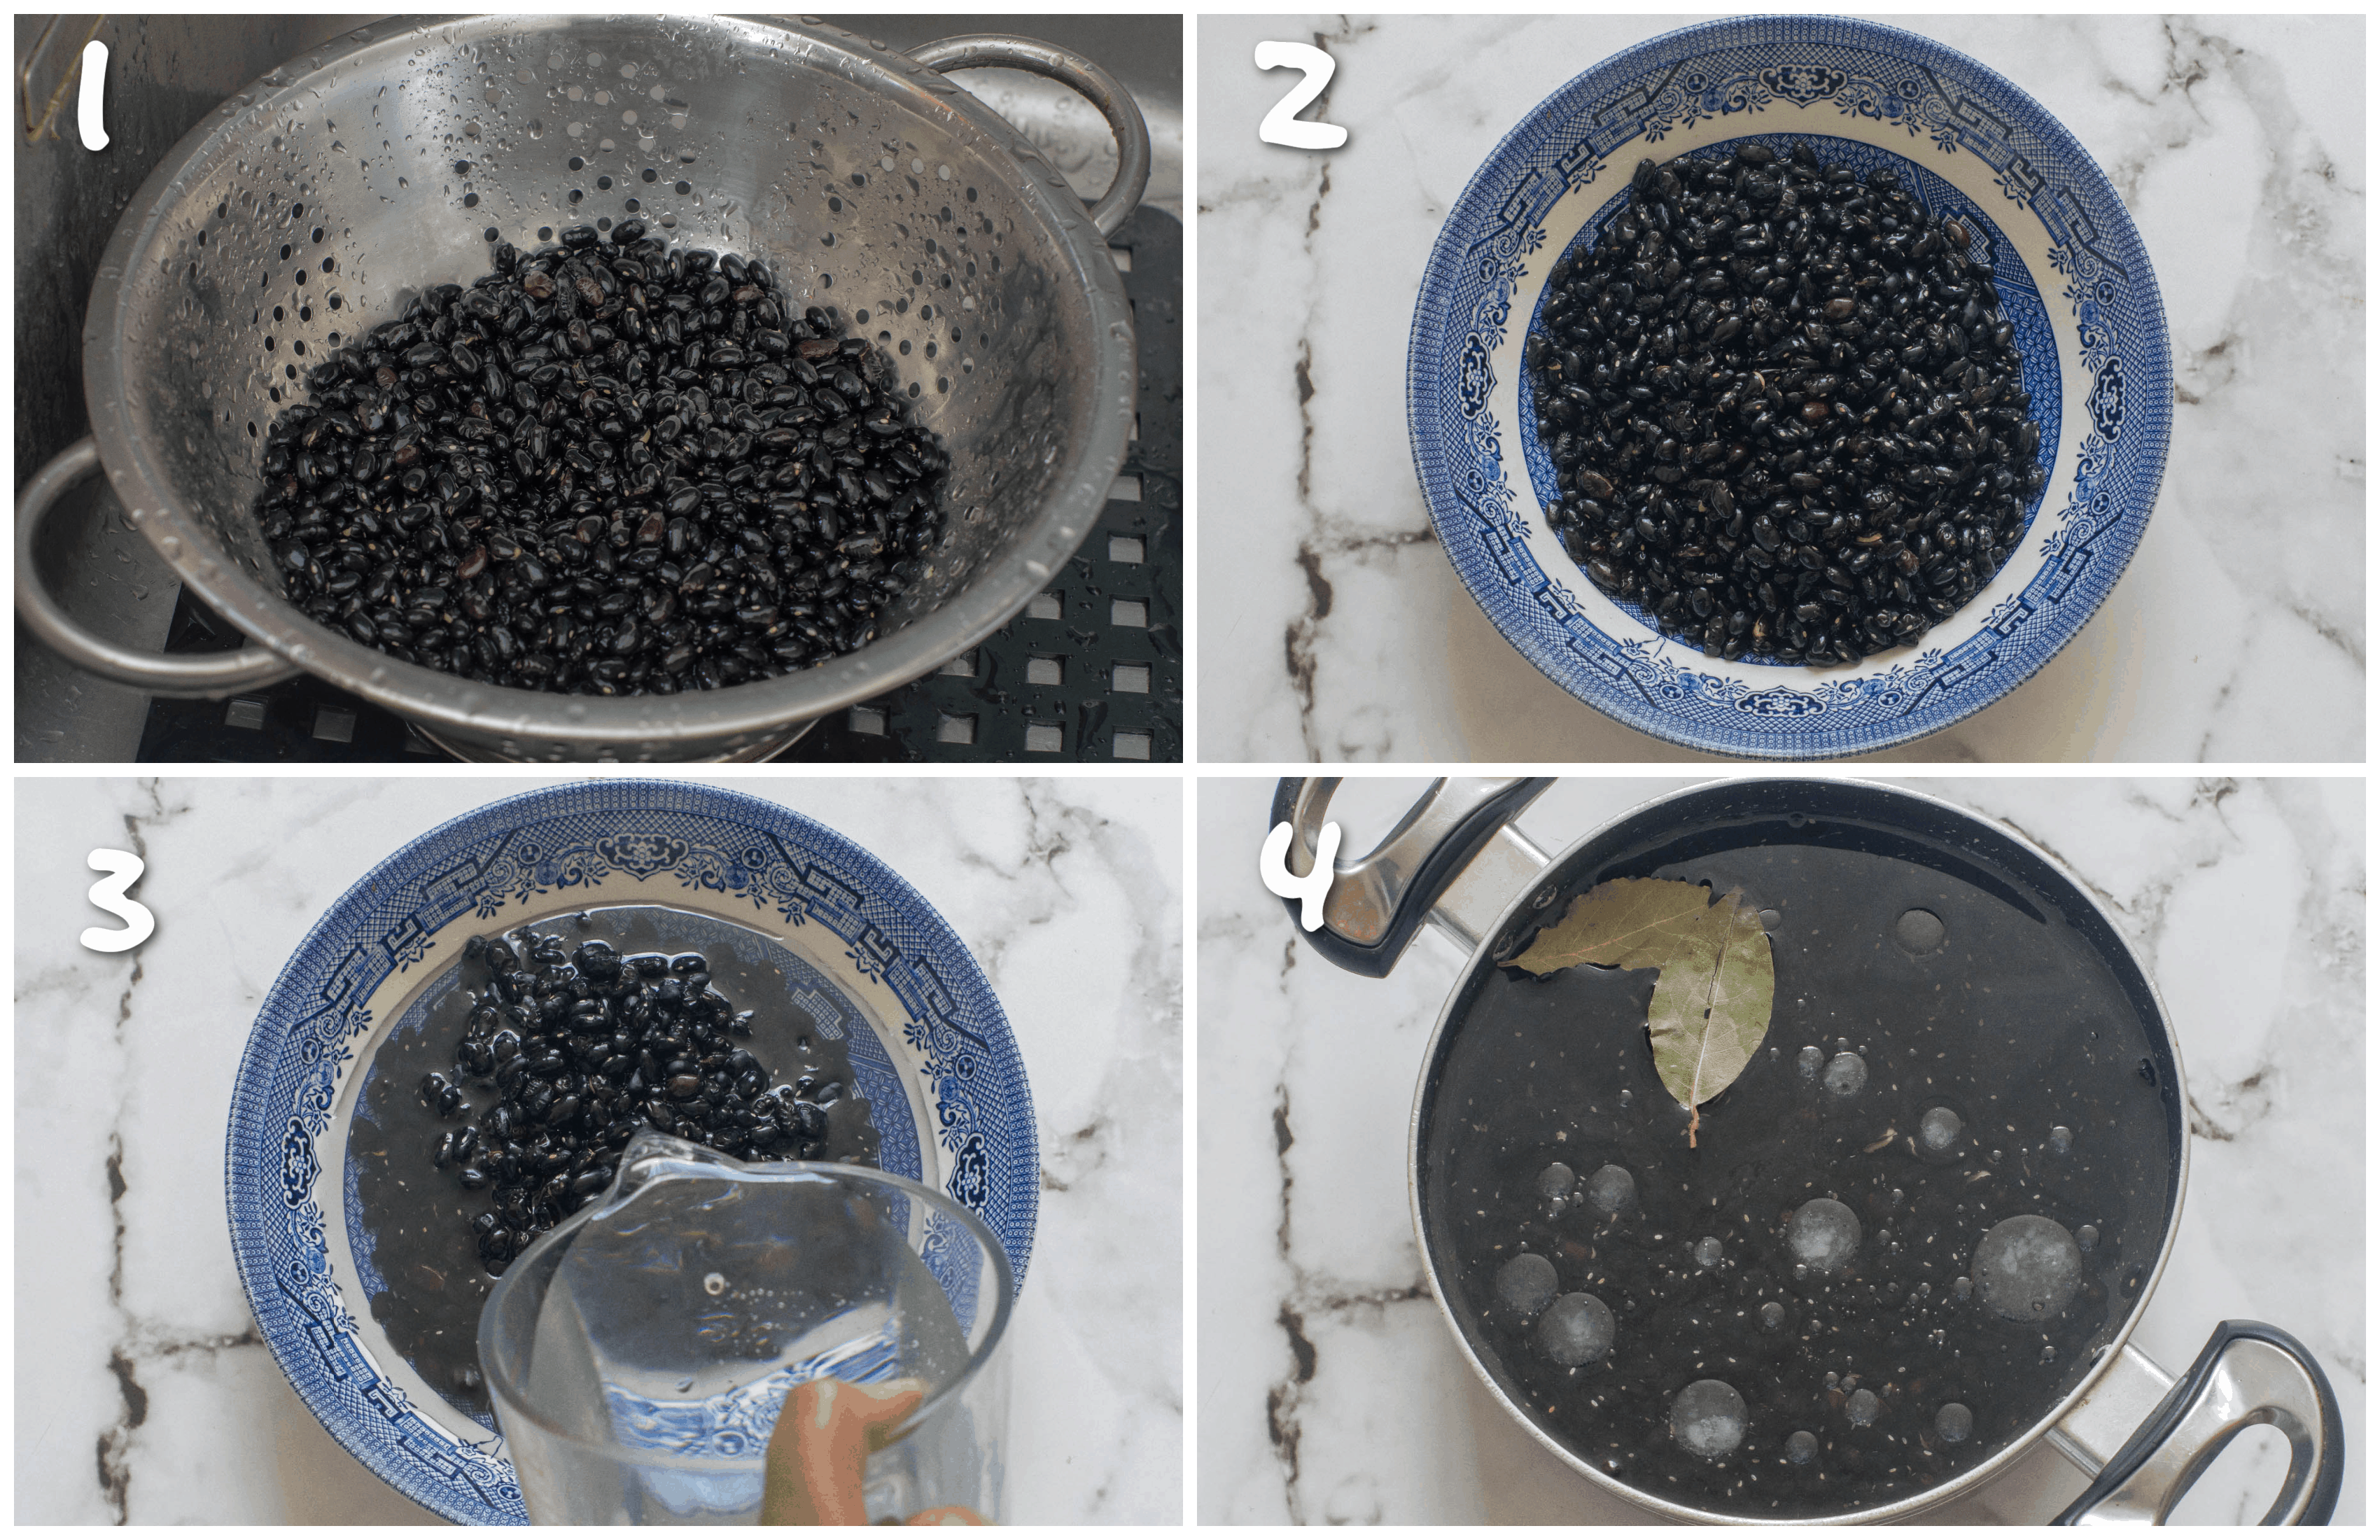 steps1-4 rinsing the black beans and boiling them